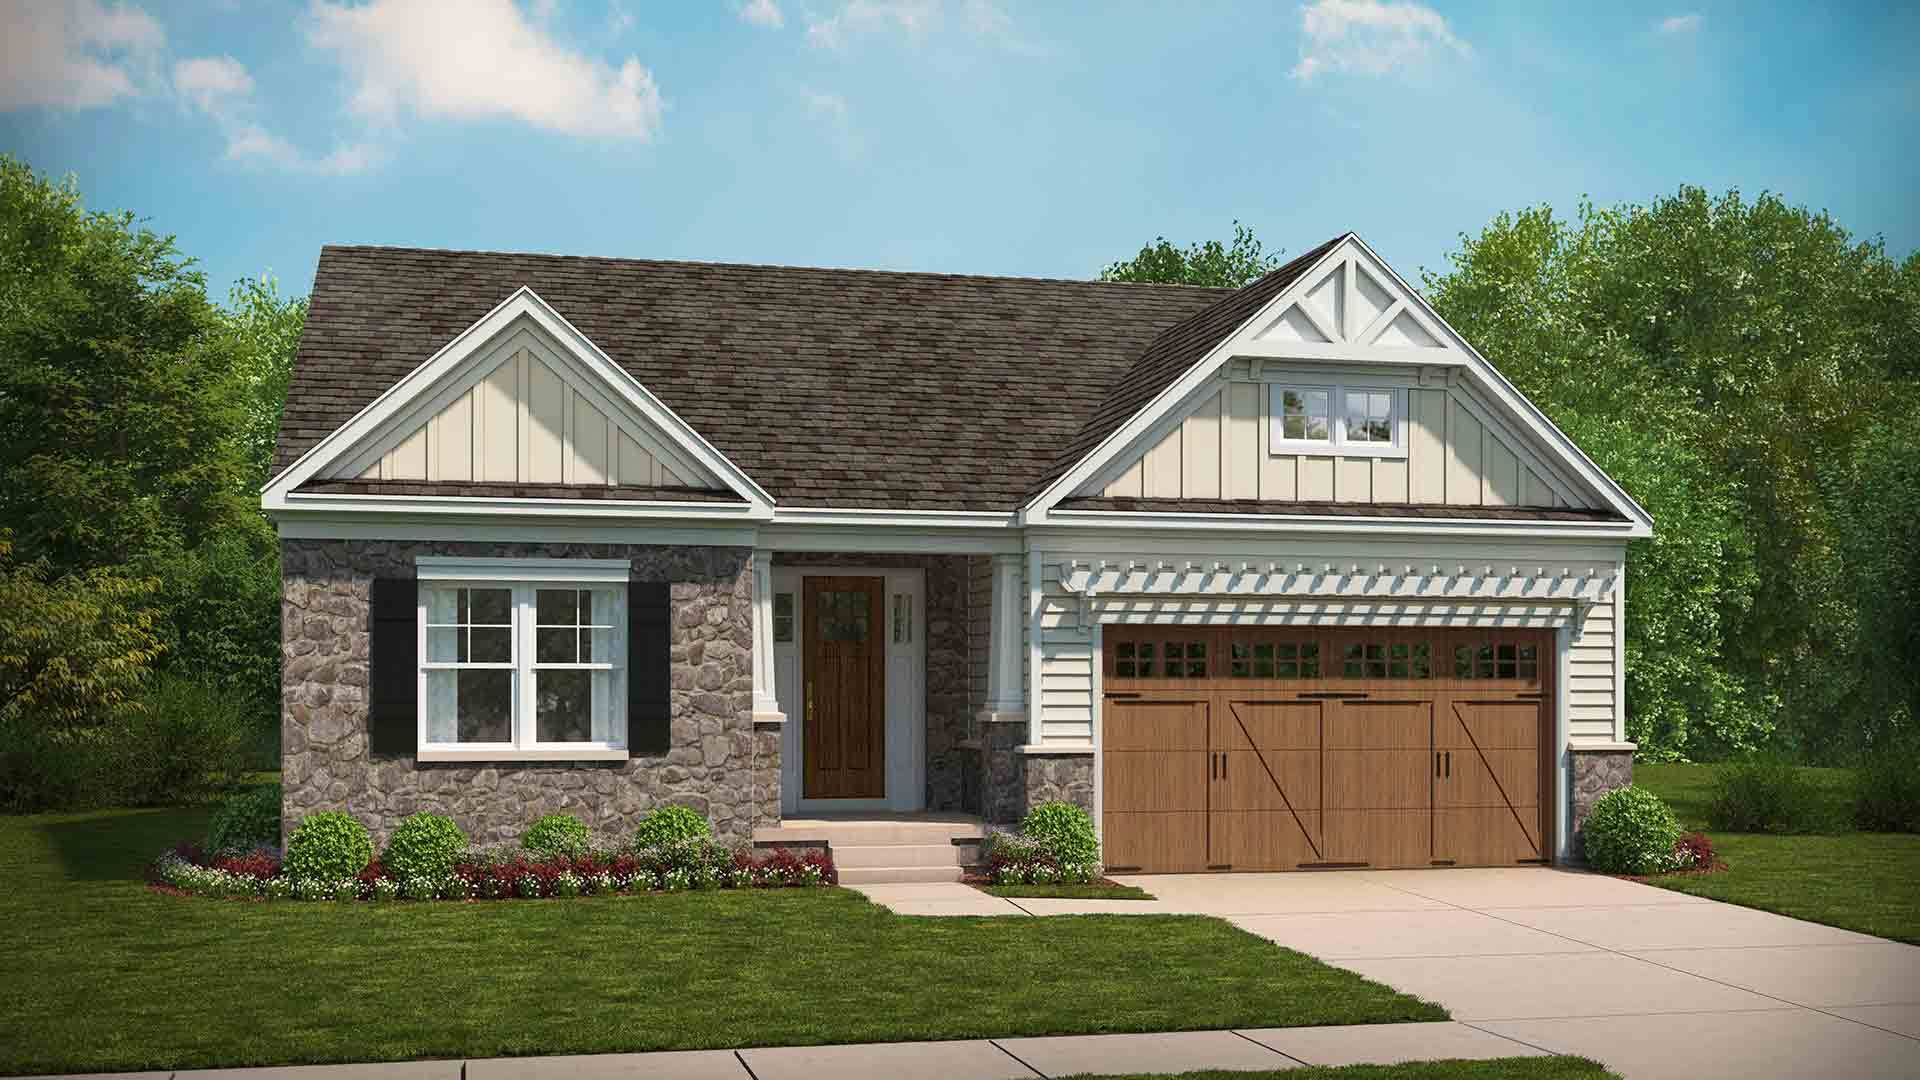 New Construction Homes And Floor Plans In Palmyra Va